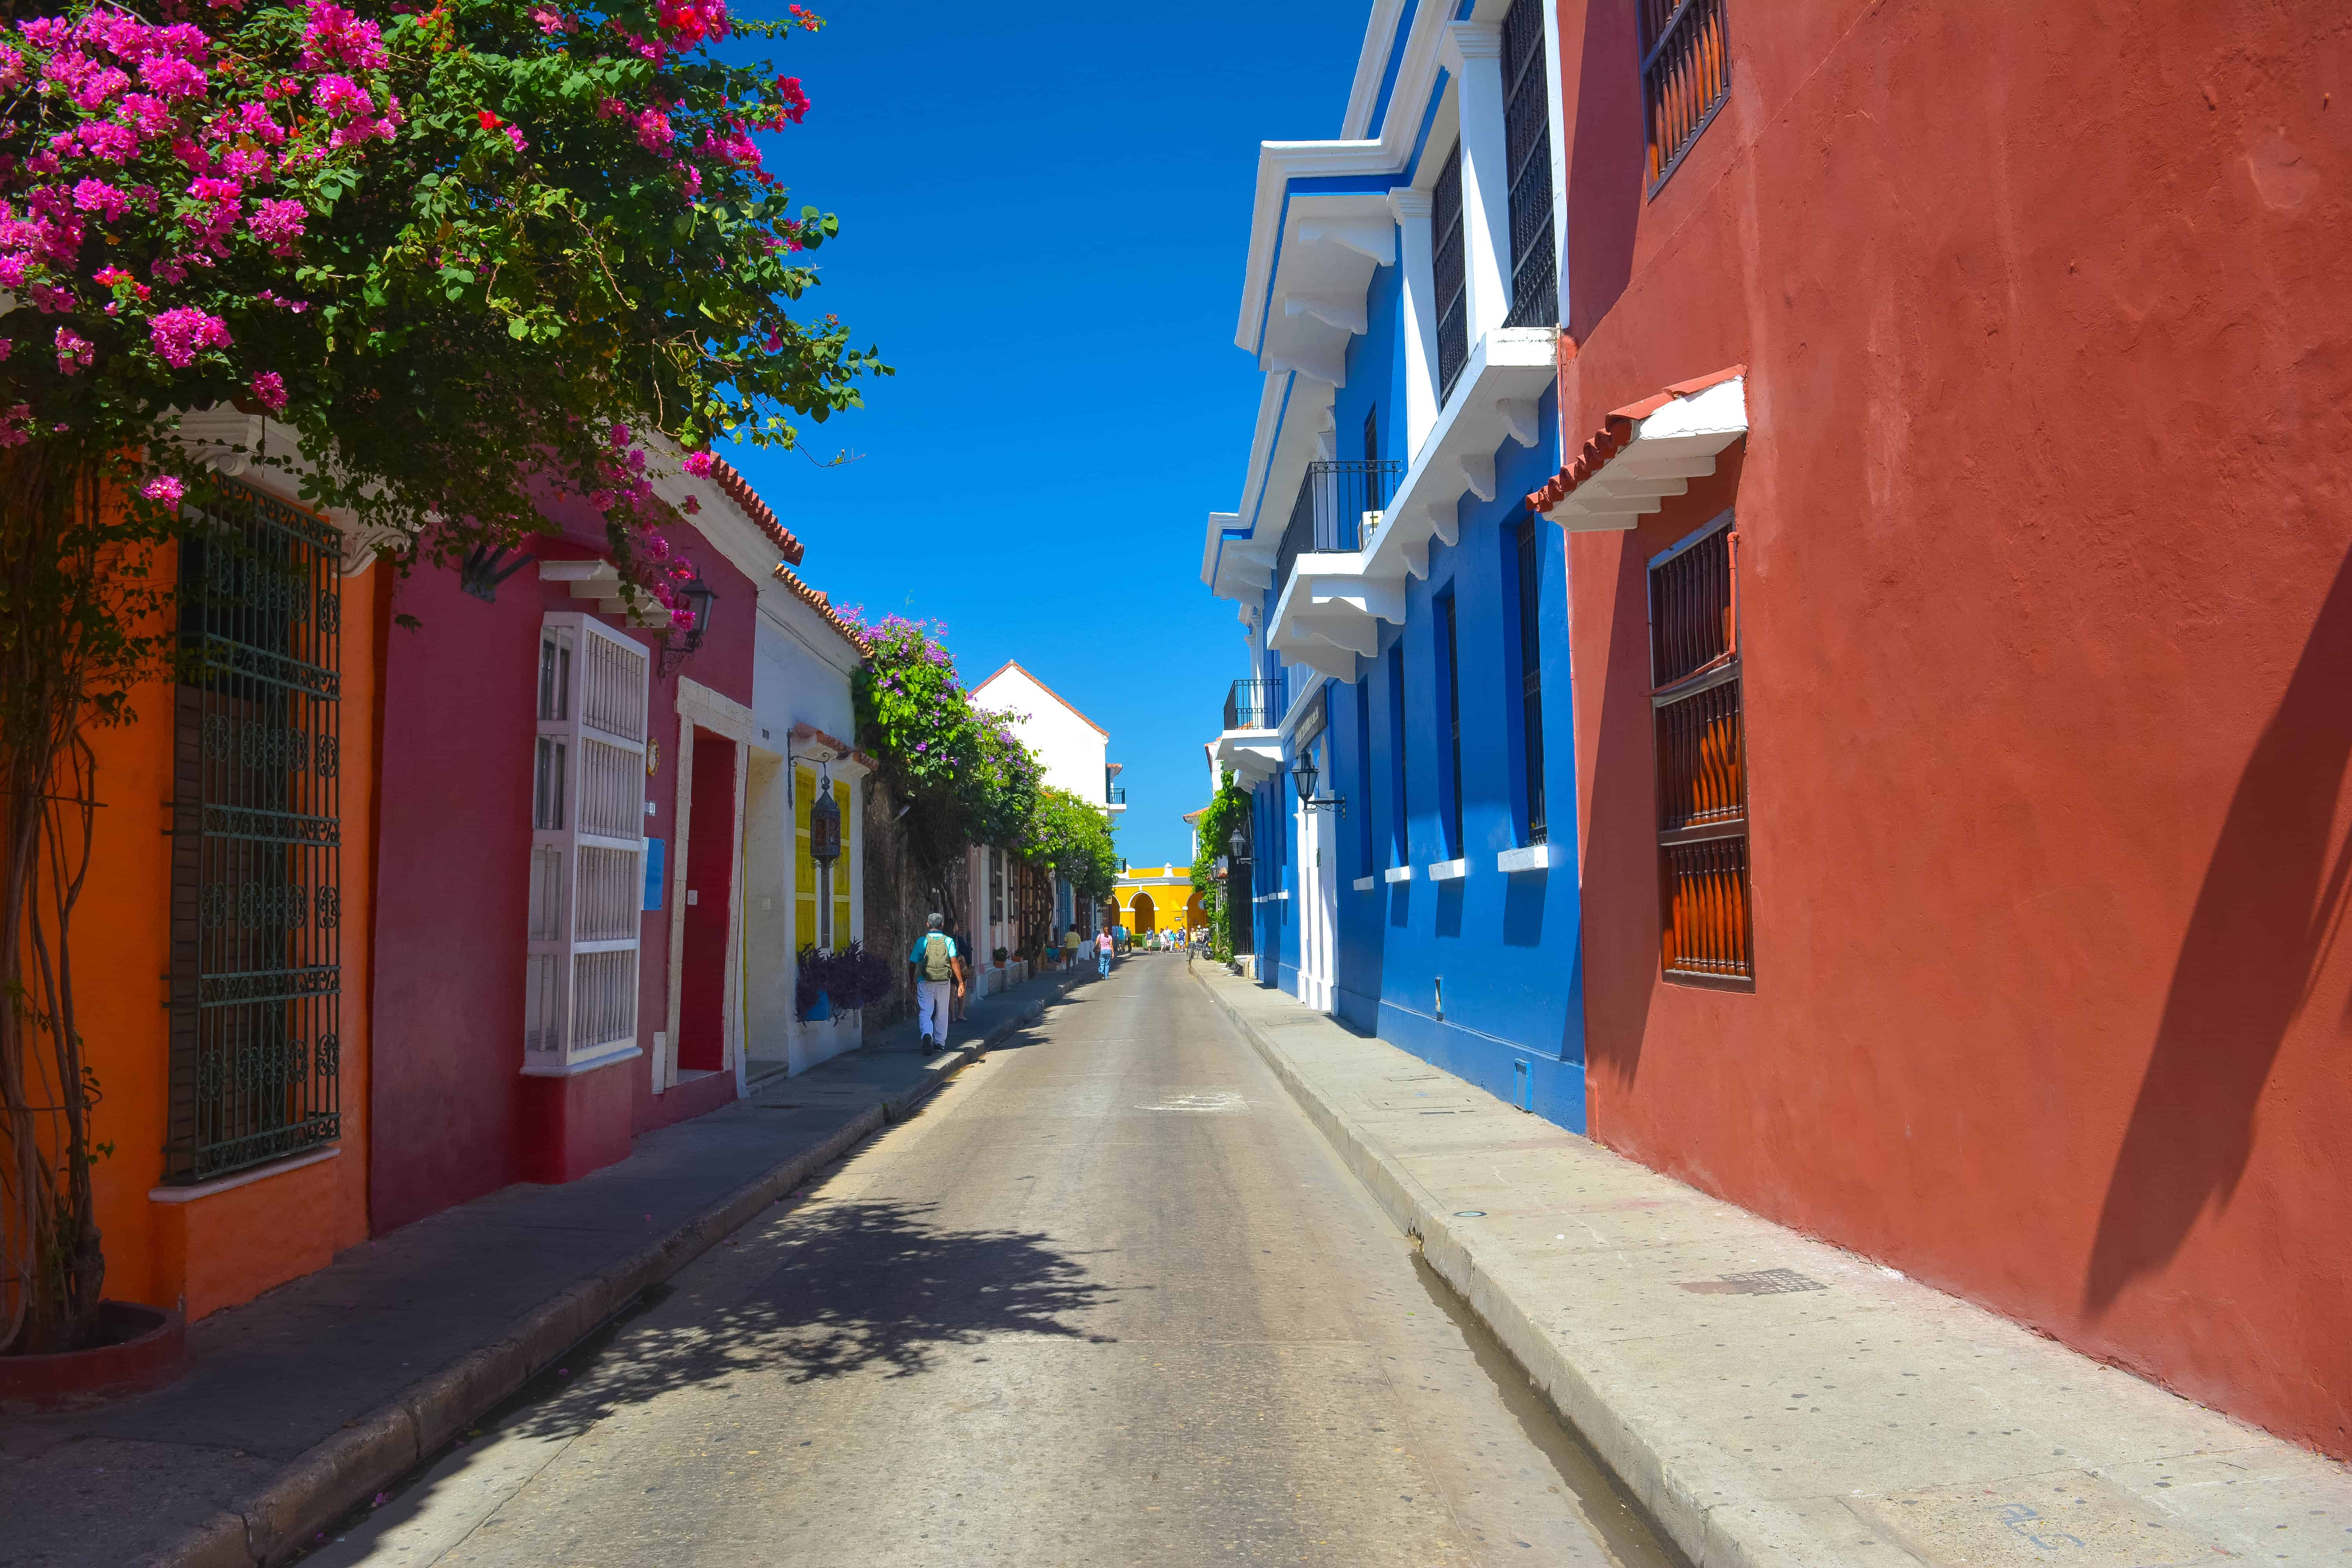 Get lost in the streets of Old Cartagena colorful alley